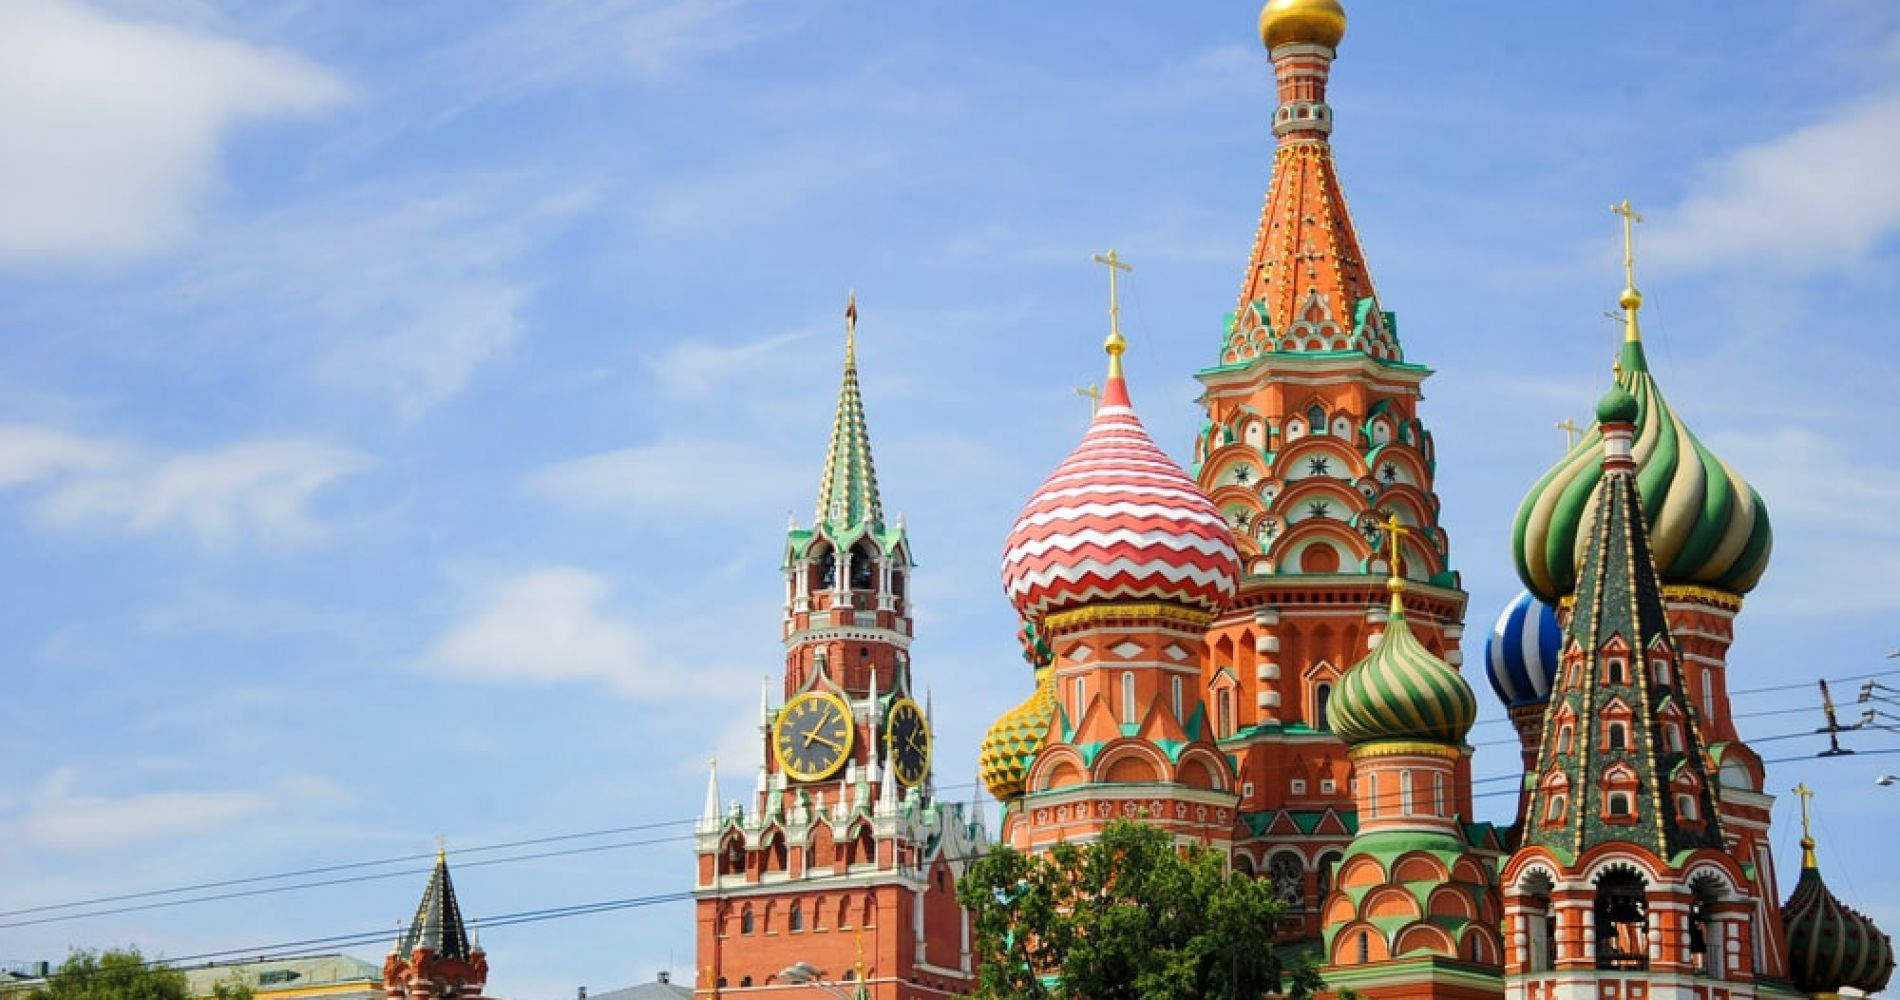 Stroll through the Red Square in Moscow